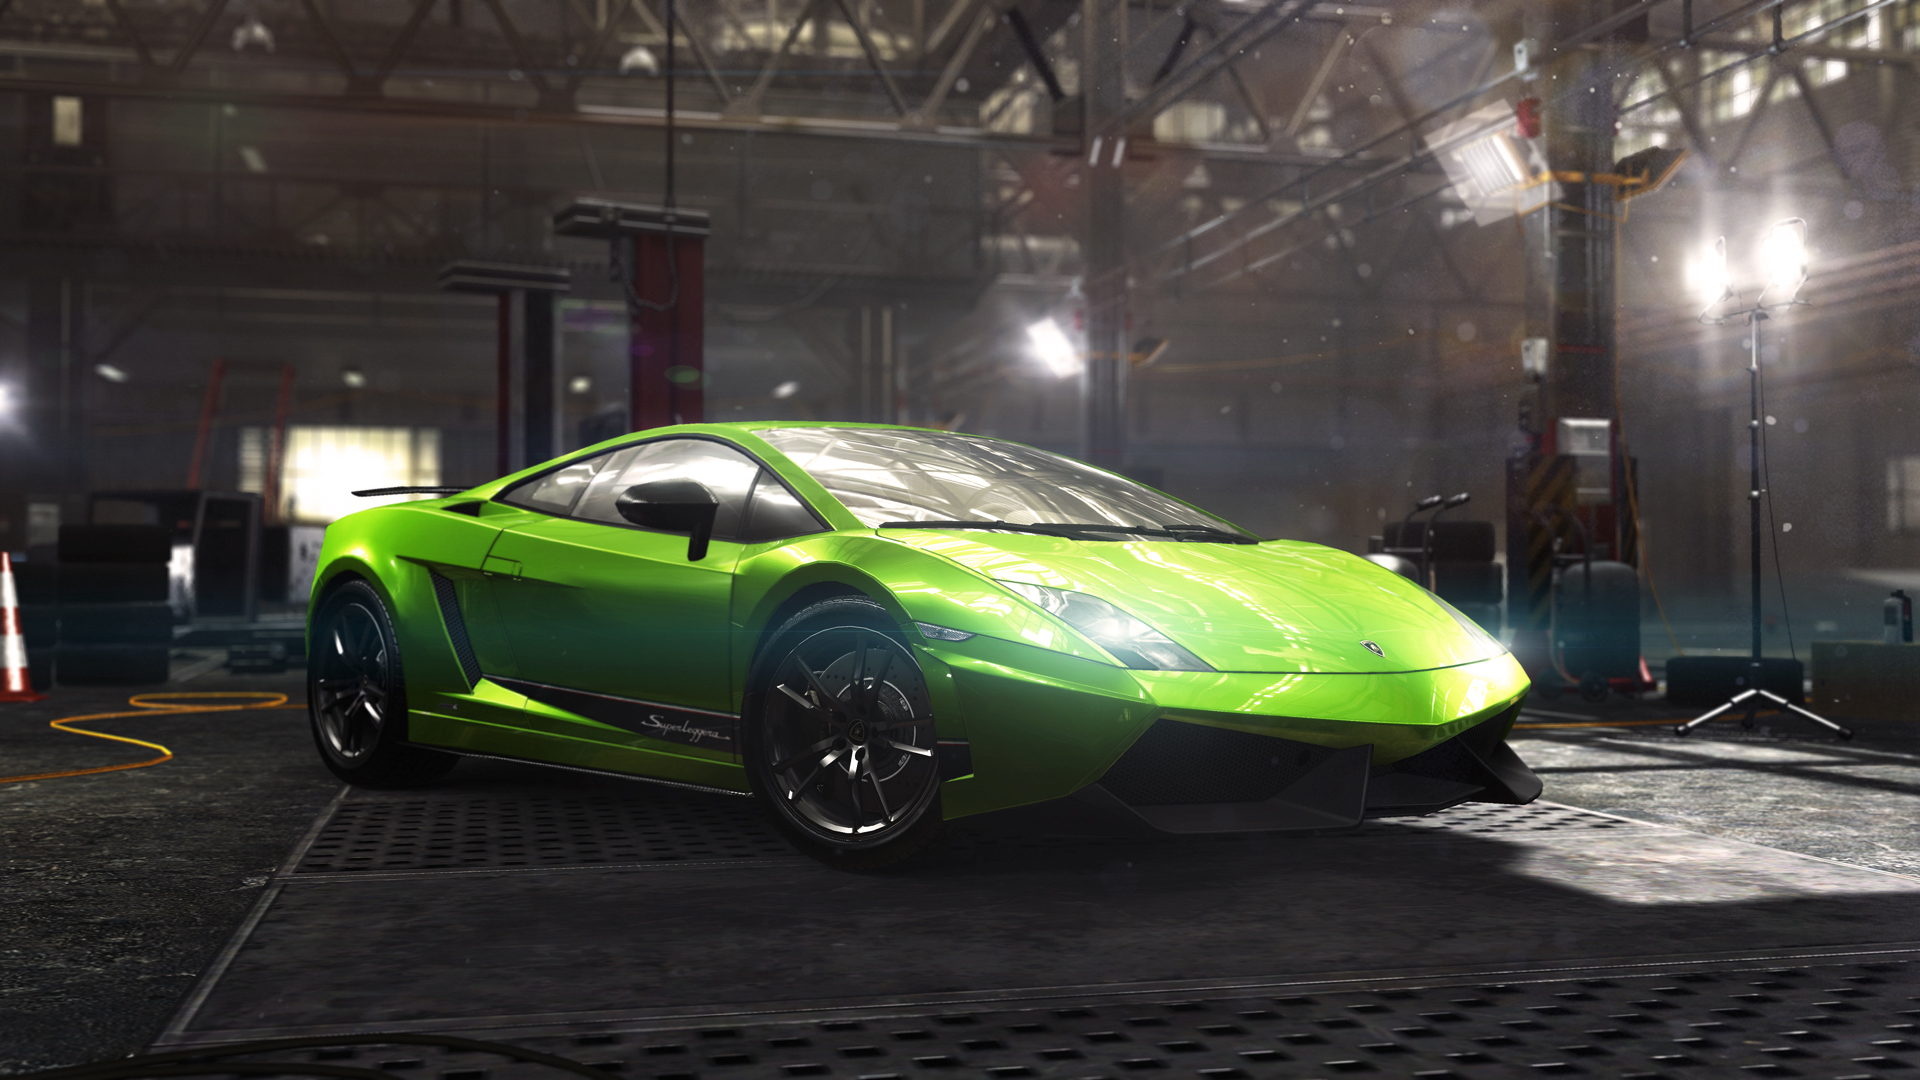 Lamborghini Gallardo LP570 4 Superleggera | Ubisoftu0027s The Crew Wiki |  FANDOM Powered By Wikia